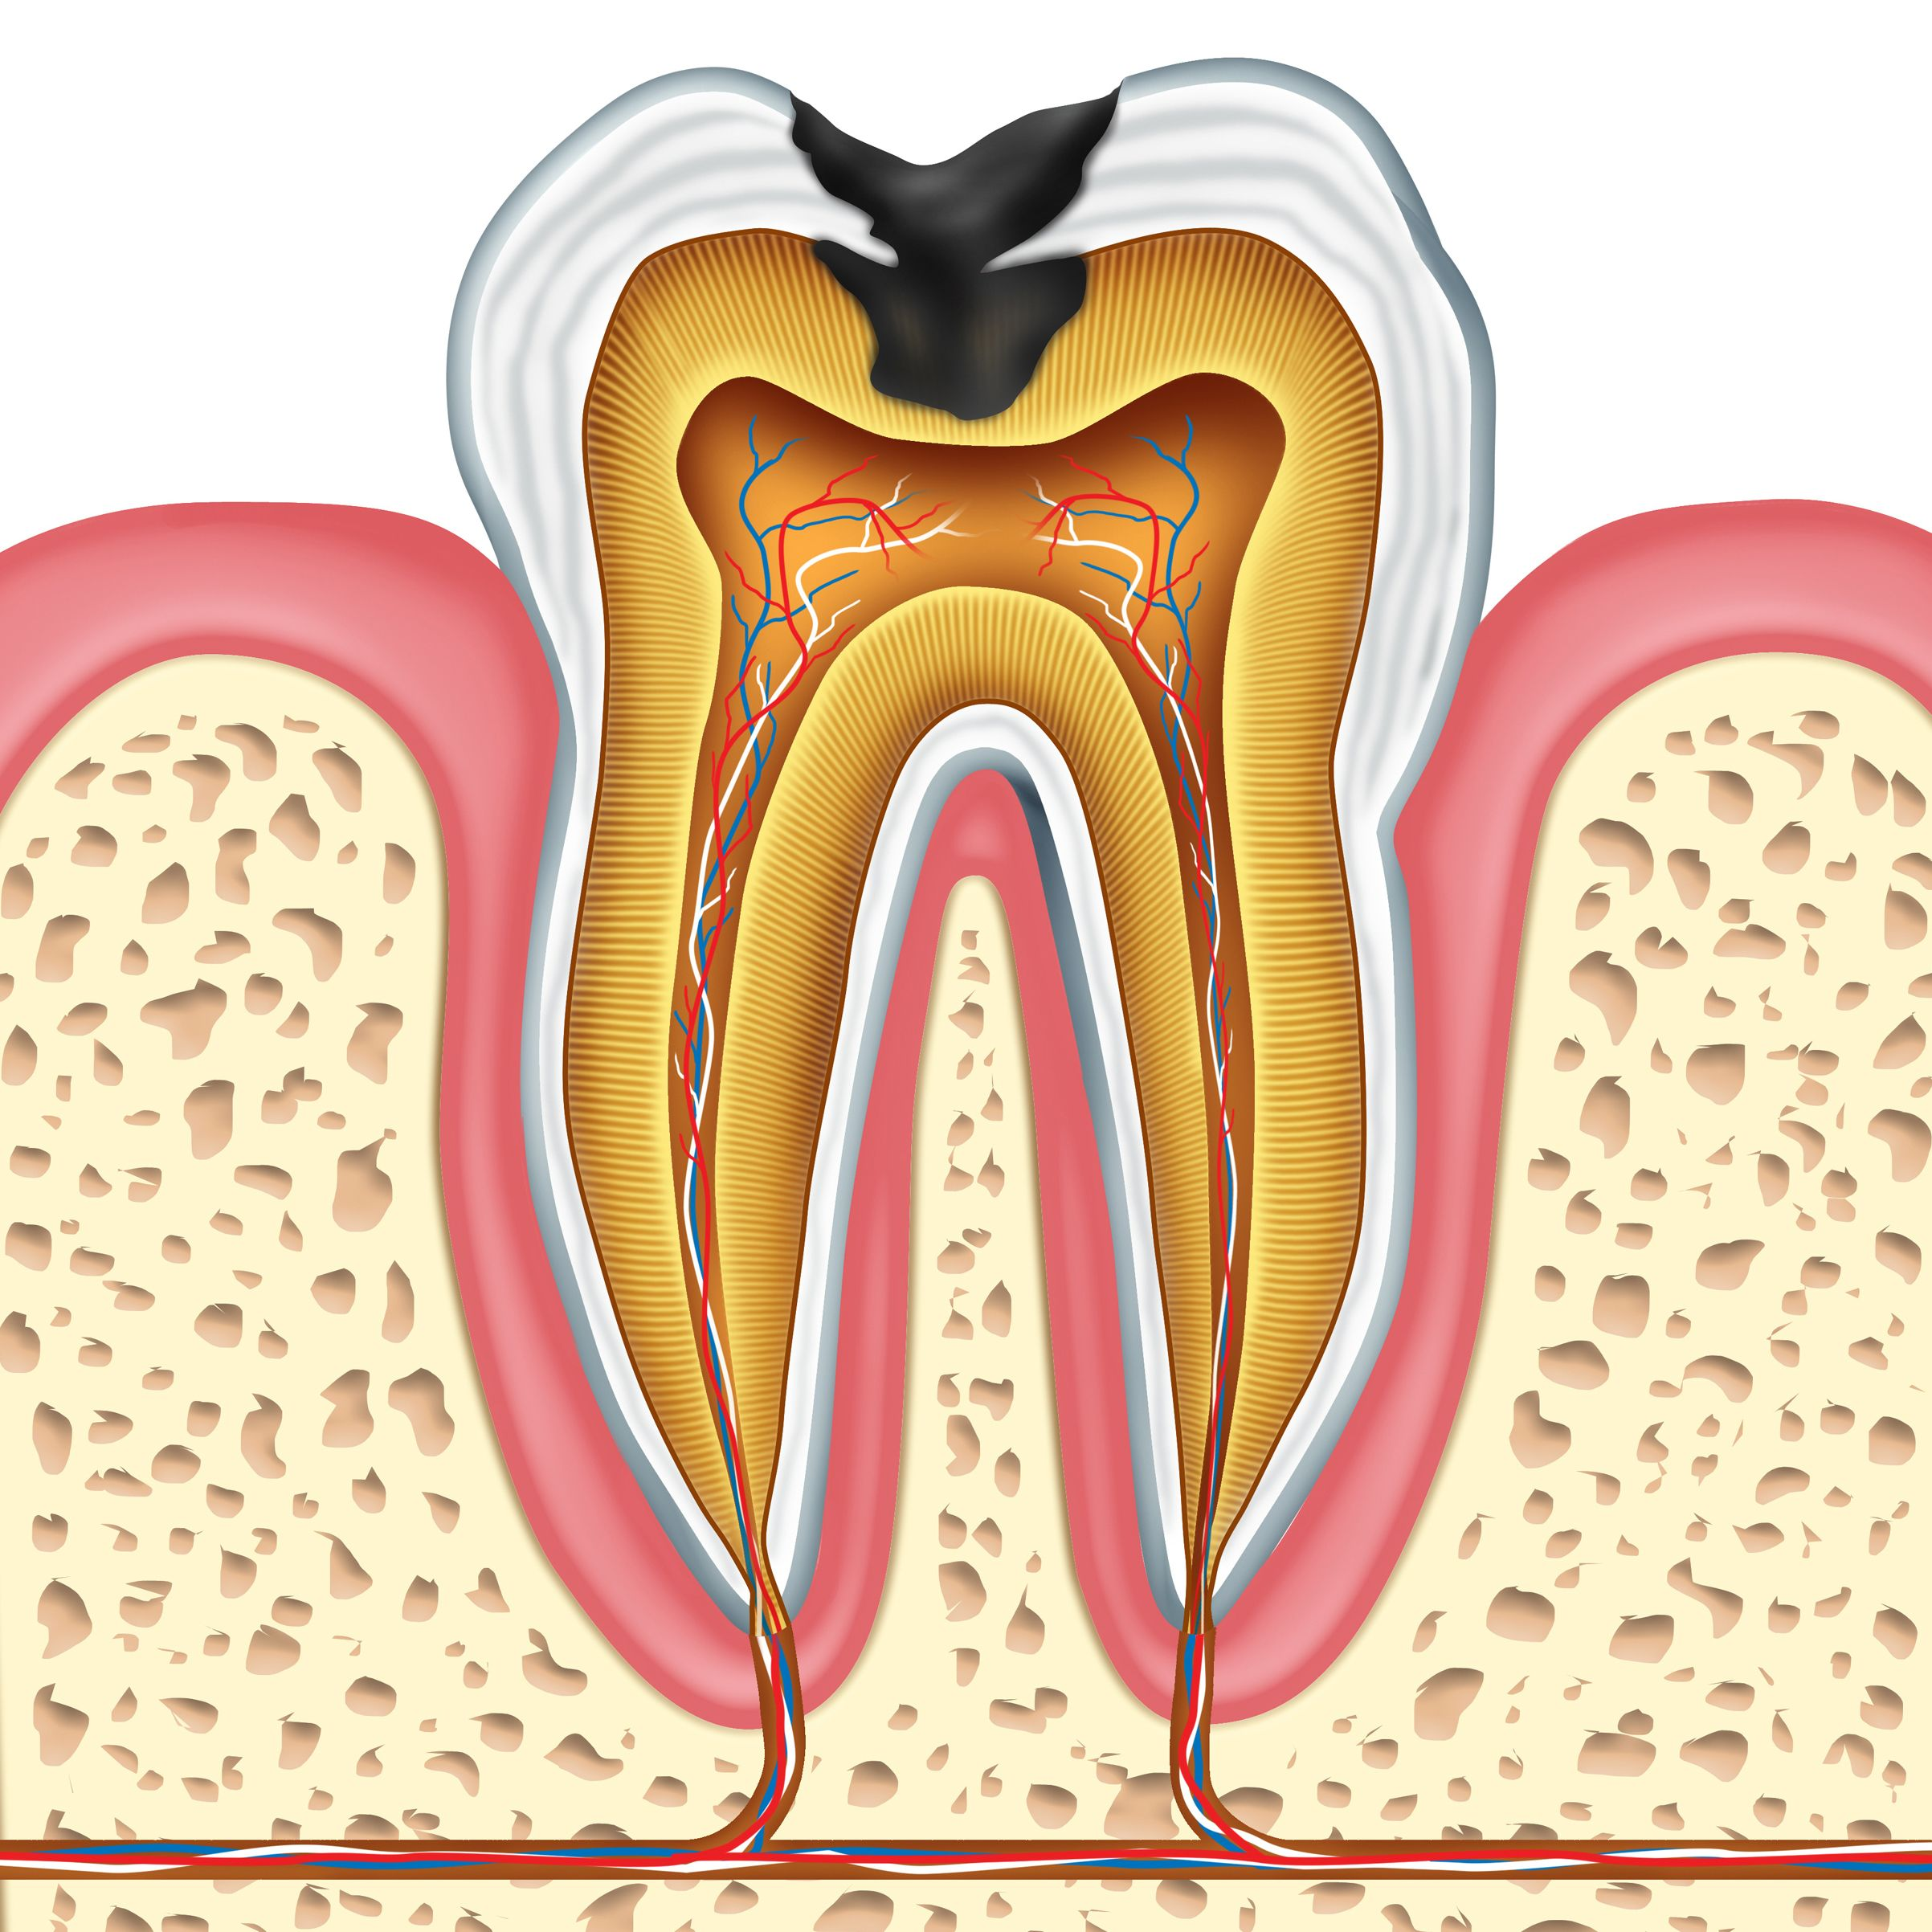 An illustration of a tooth affected by a cavity